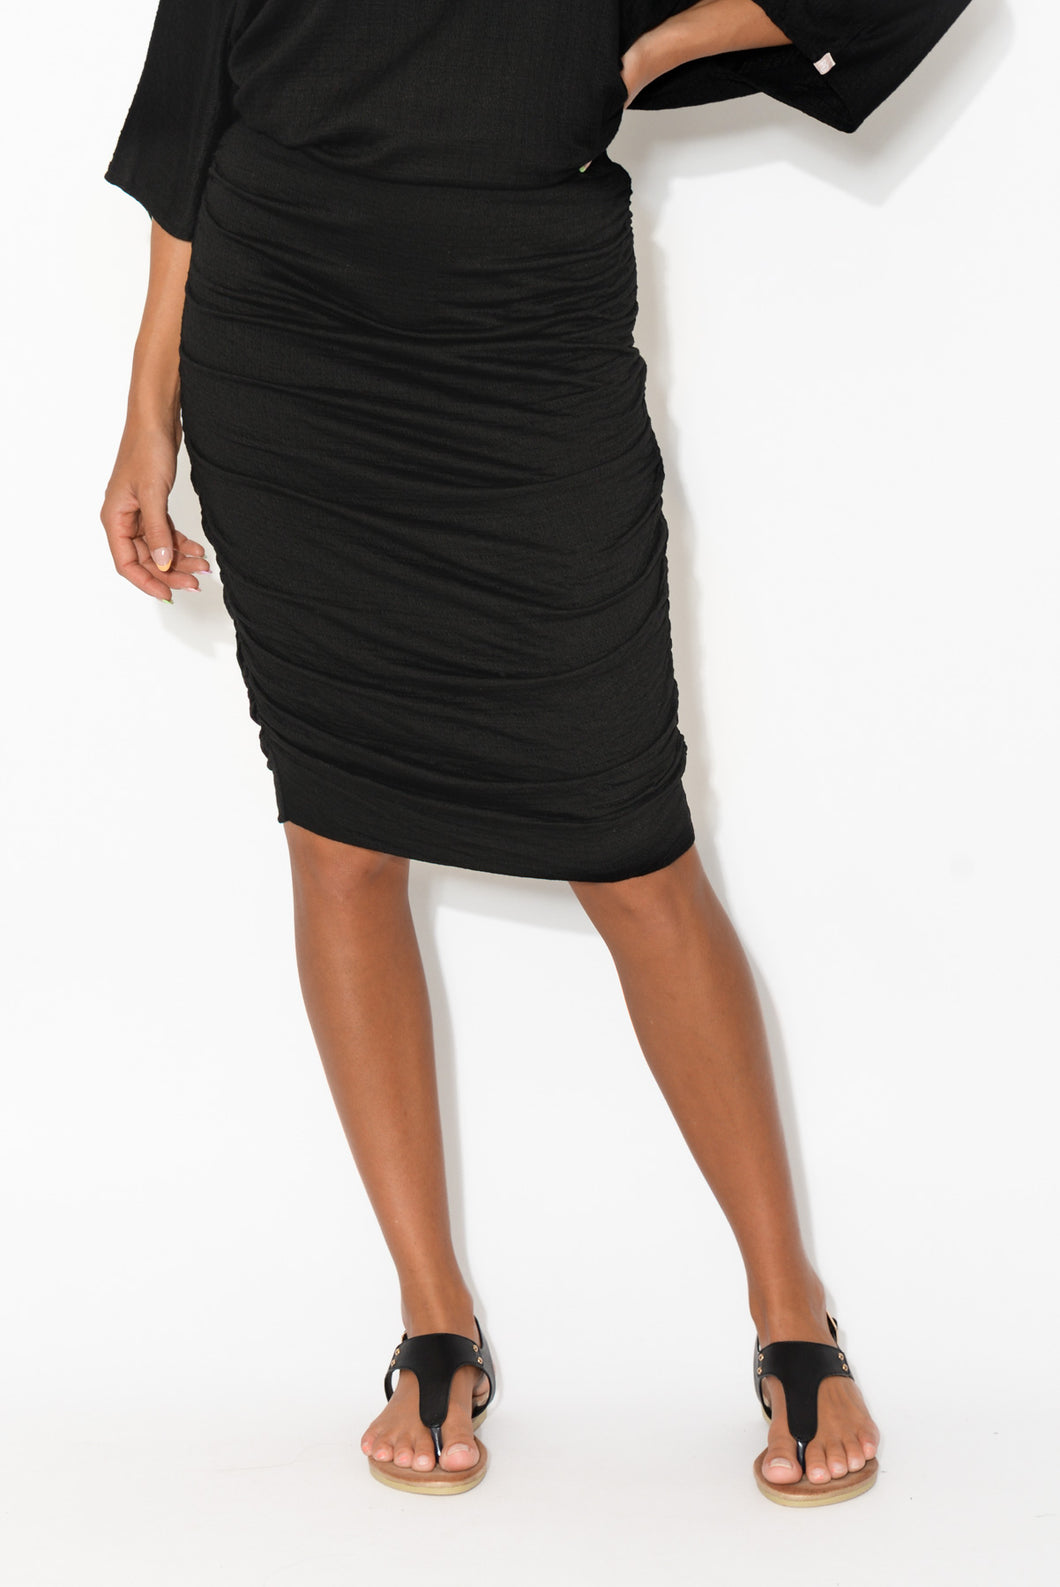 Black Textured Ruched Skirt